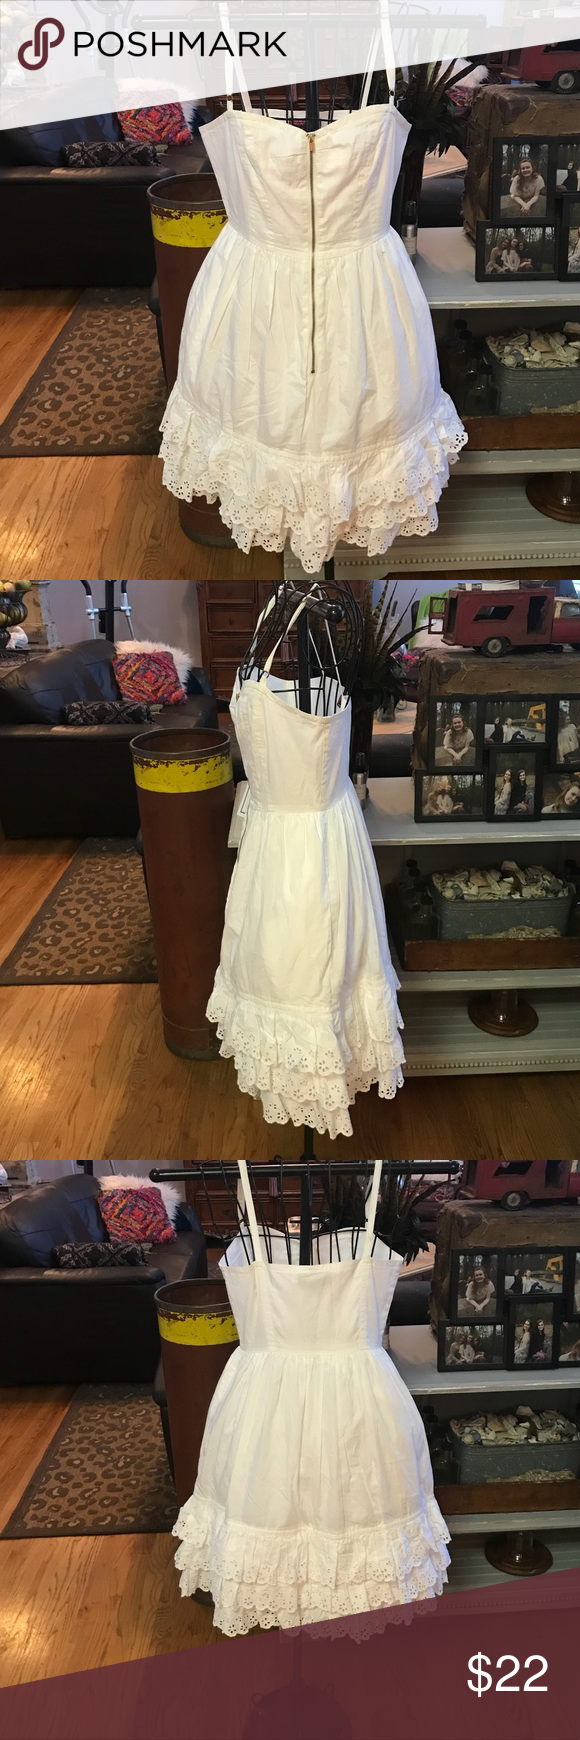 a1d598a19acec White Dress w/ Eyelet ruffles   Tracy Feith White Dress w/ eyelet ruffles  by Tracy Feith for Target. Spaghetti Straps. Gold zipper up back. Size 3.